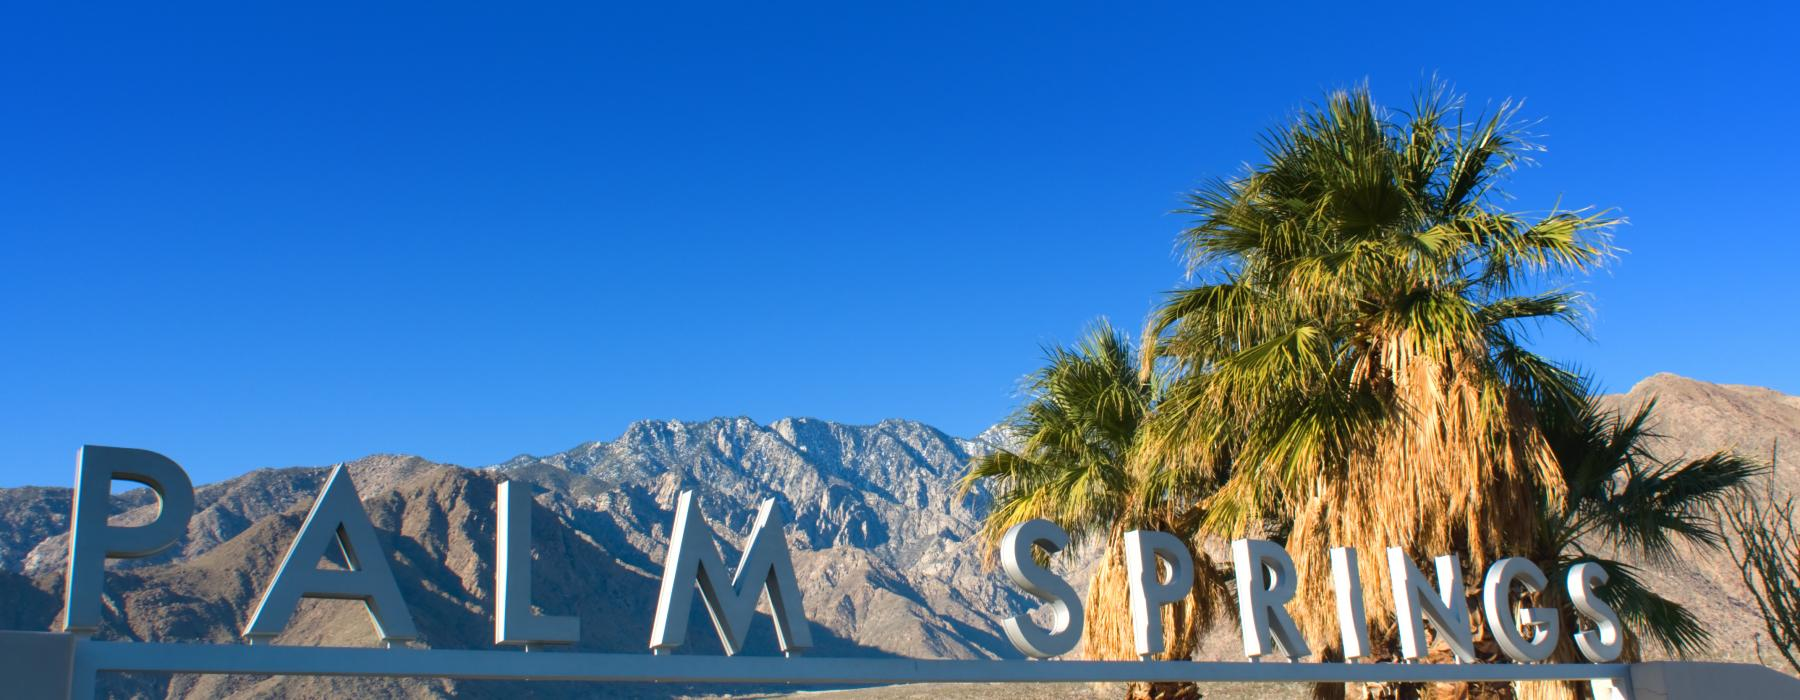 Palm Springs Sign in Palm Spring California USA By Byron Moore